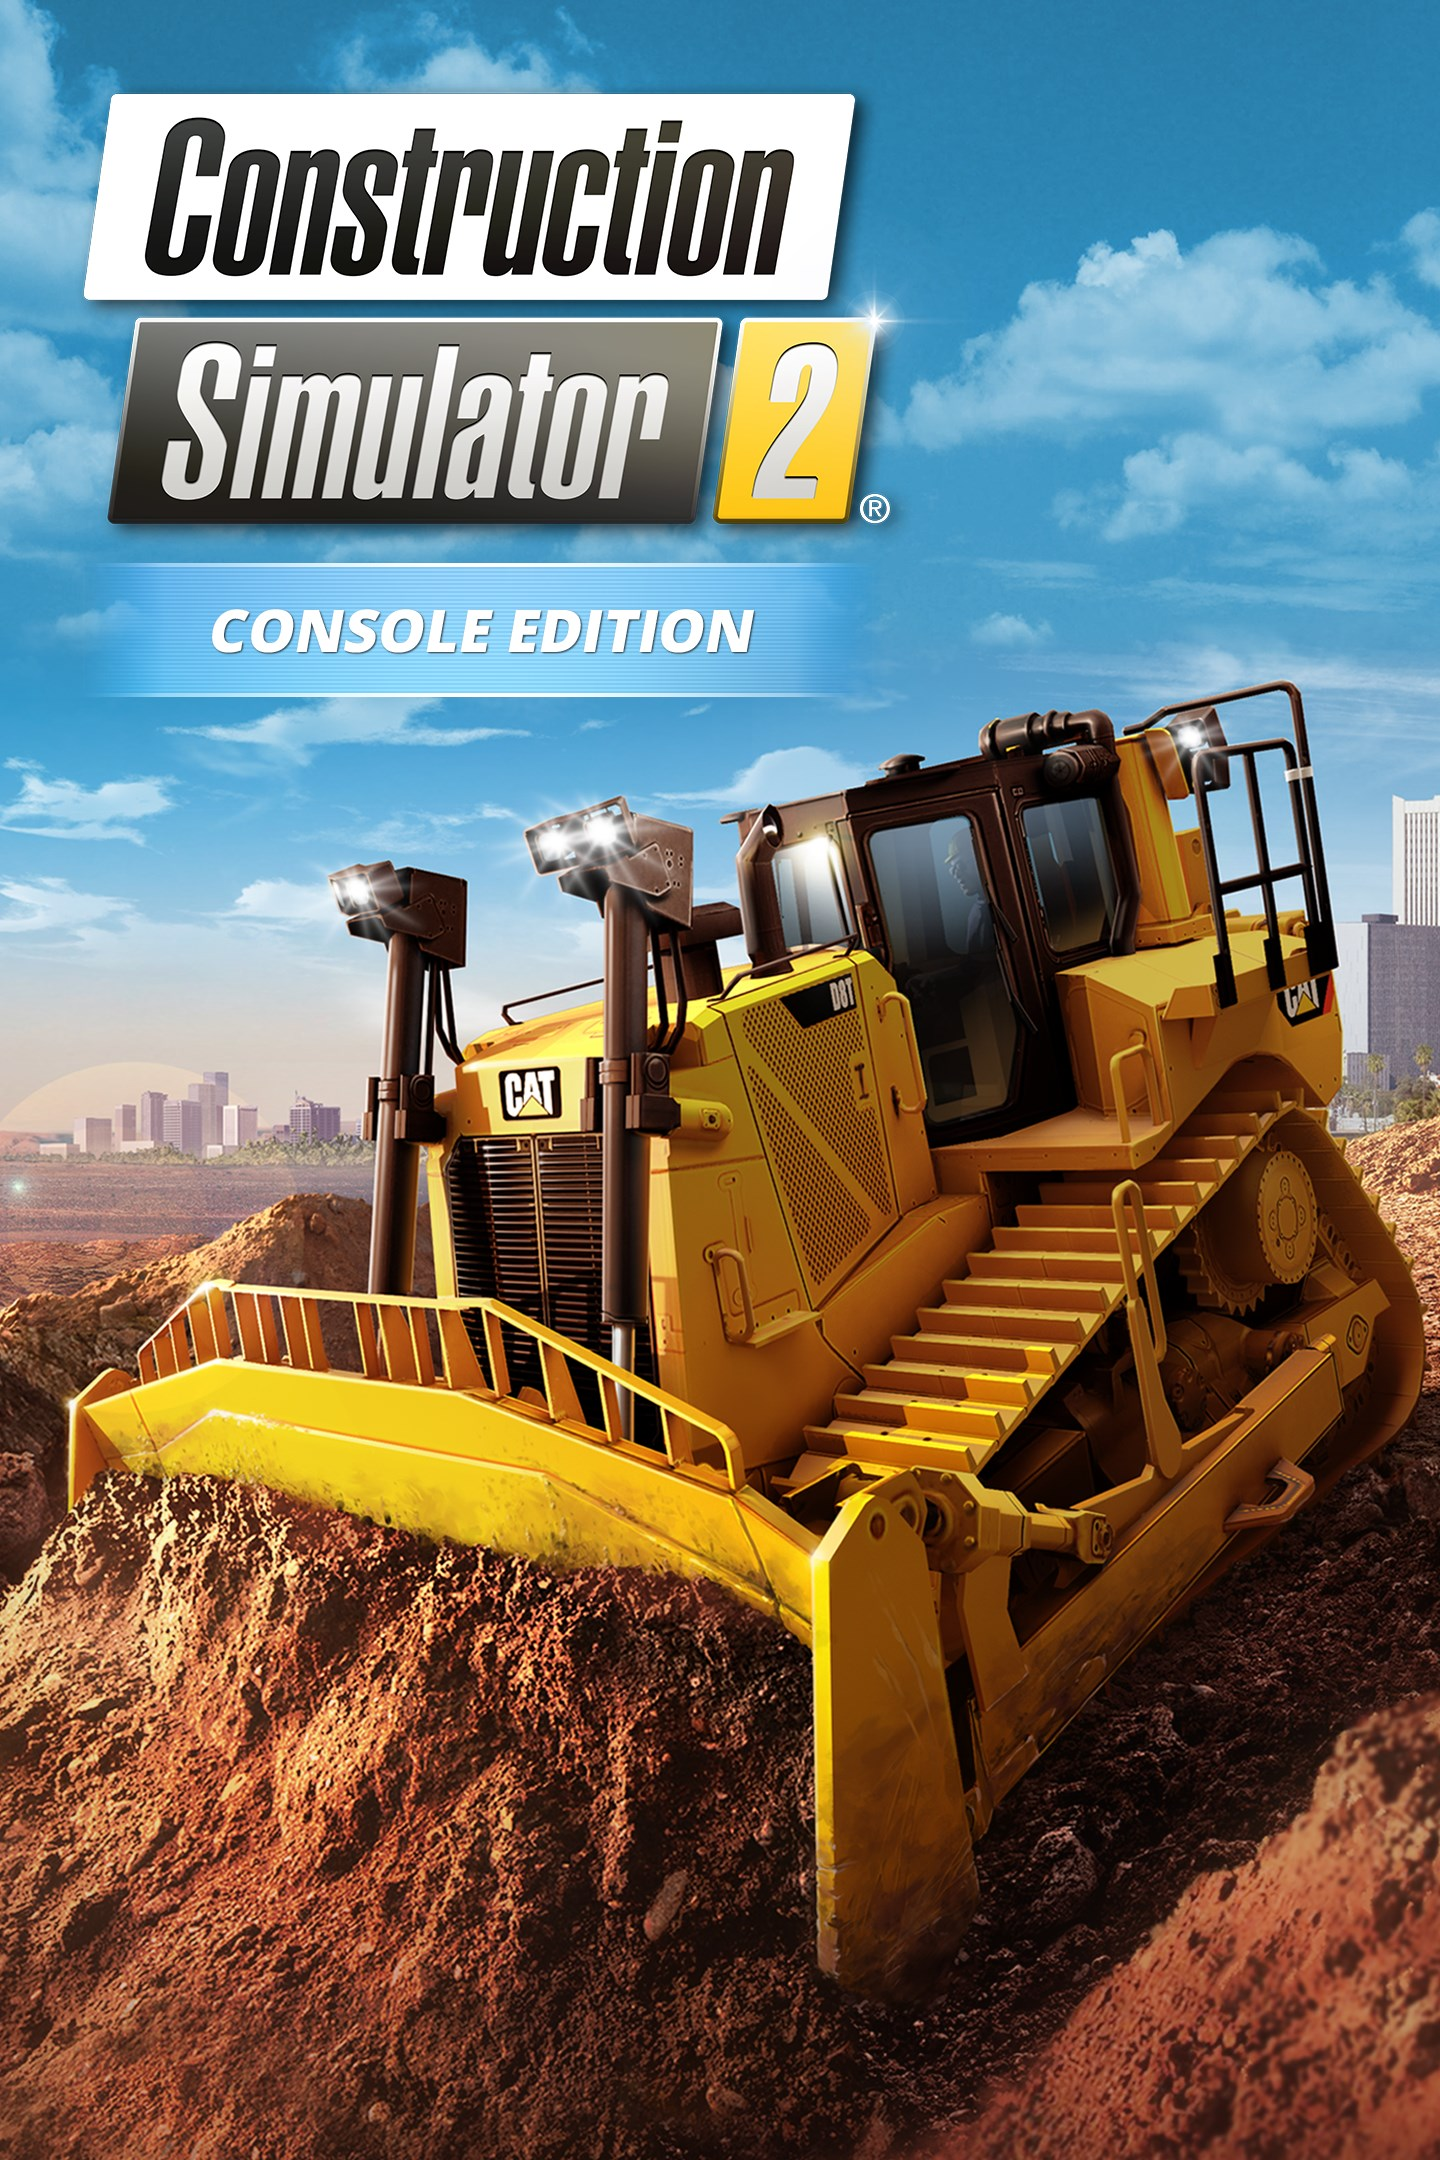 Buy Construction Simulator 2 US - Console Edition